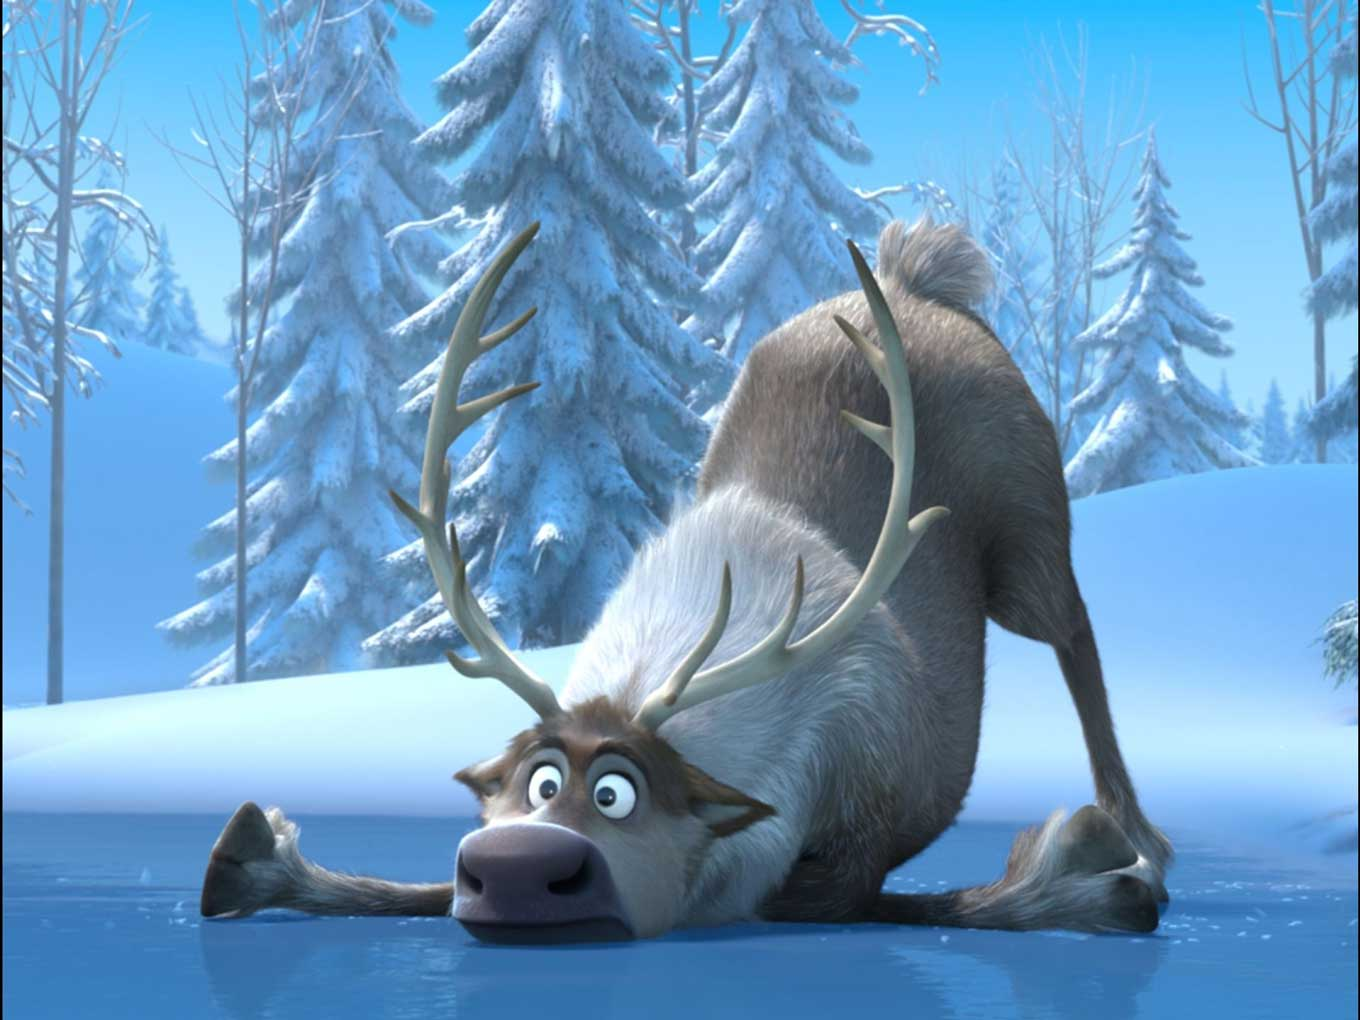 backgrounds anna frozen movie wallpapers free disney movie wallpapers 1360x1020